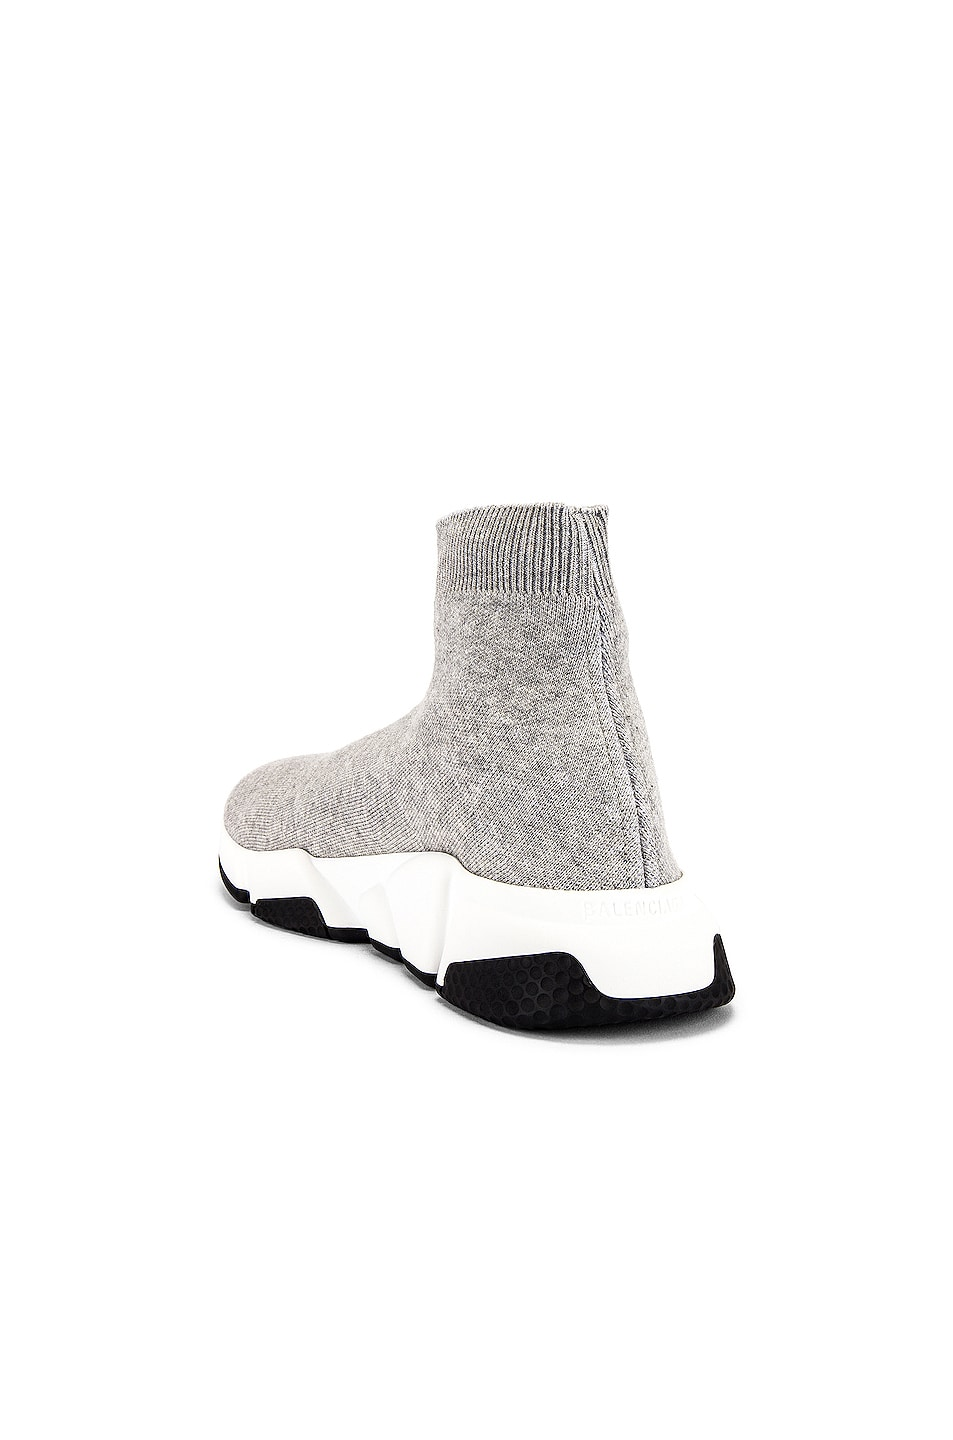 Image 3 of Balenciaga Speed Light Sneaker in Grey & White & Black